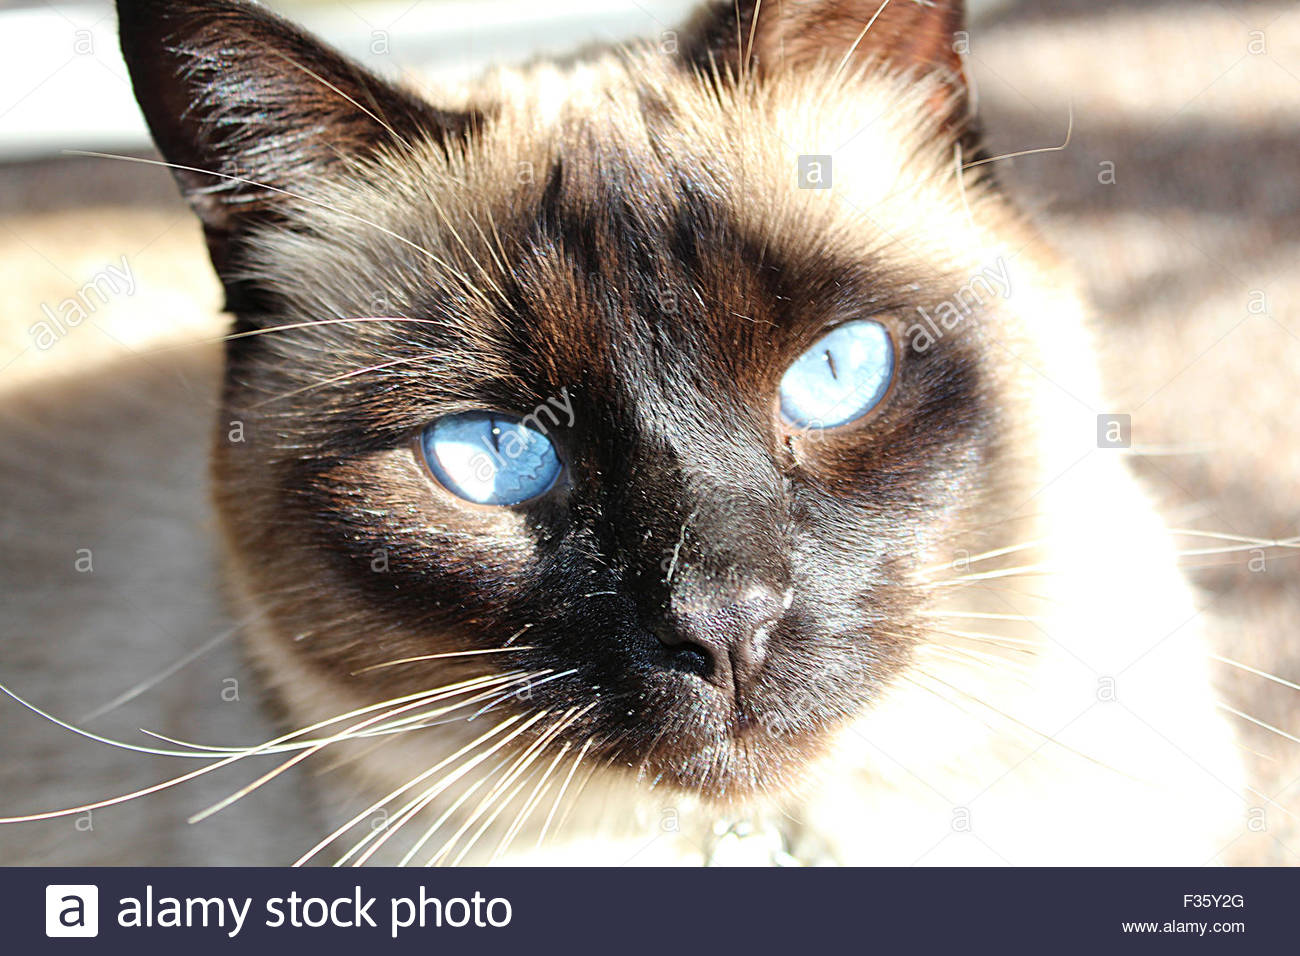 Blue Point Siamese Cat Stock Photos & Blue Point Siamese Cat Stock ...